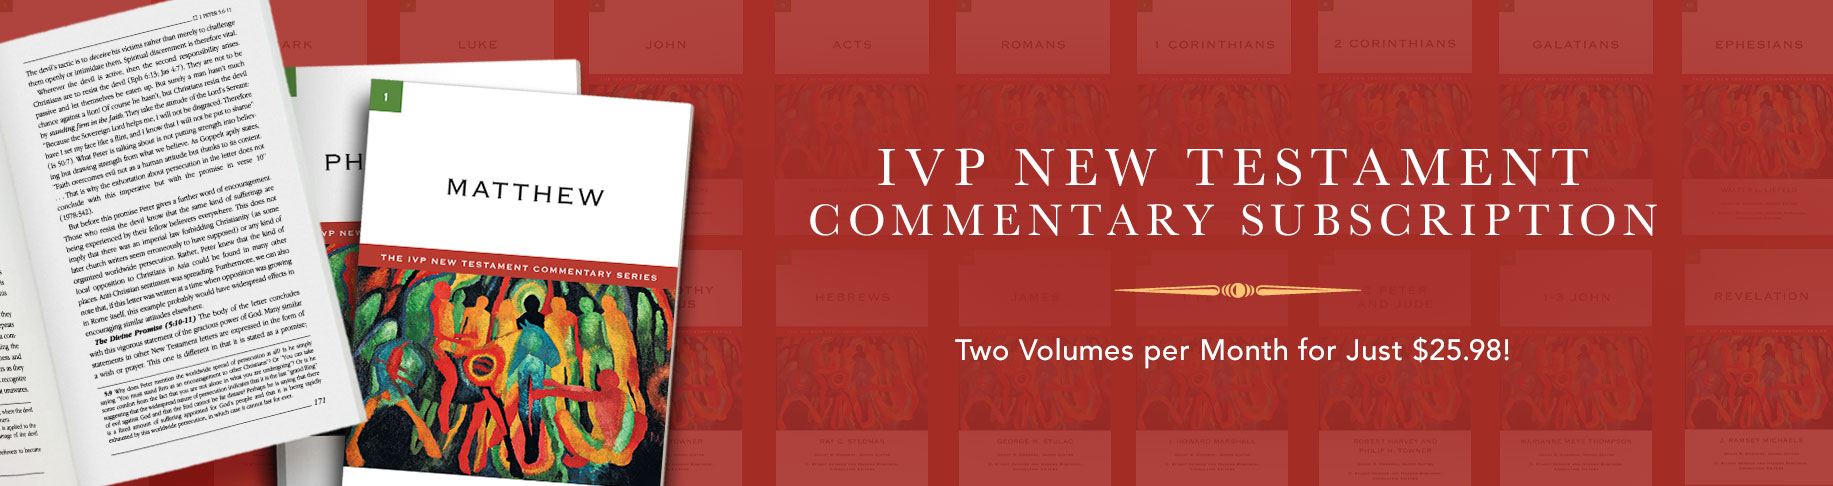 IVP New Testament Commentary Subscription